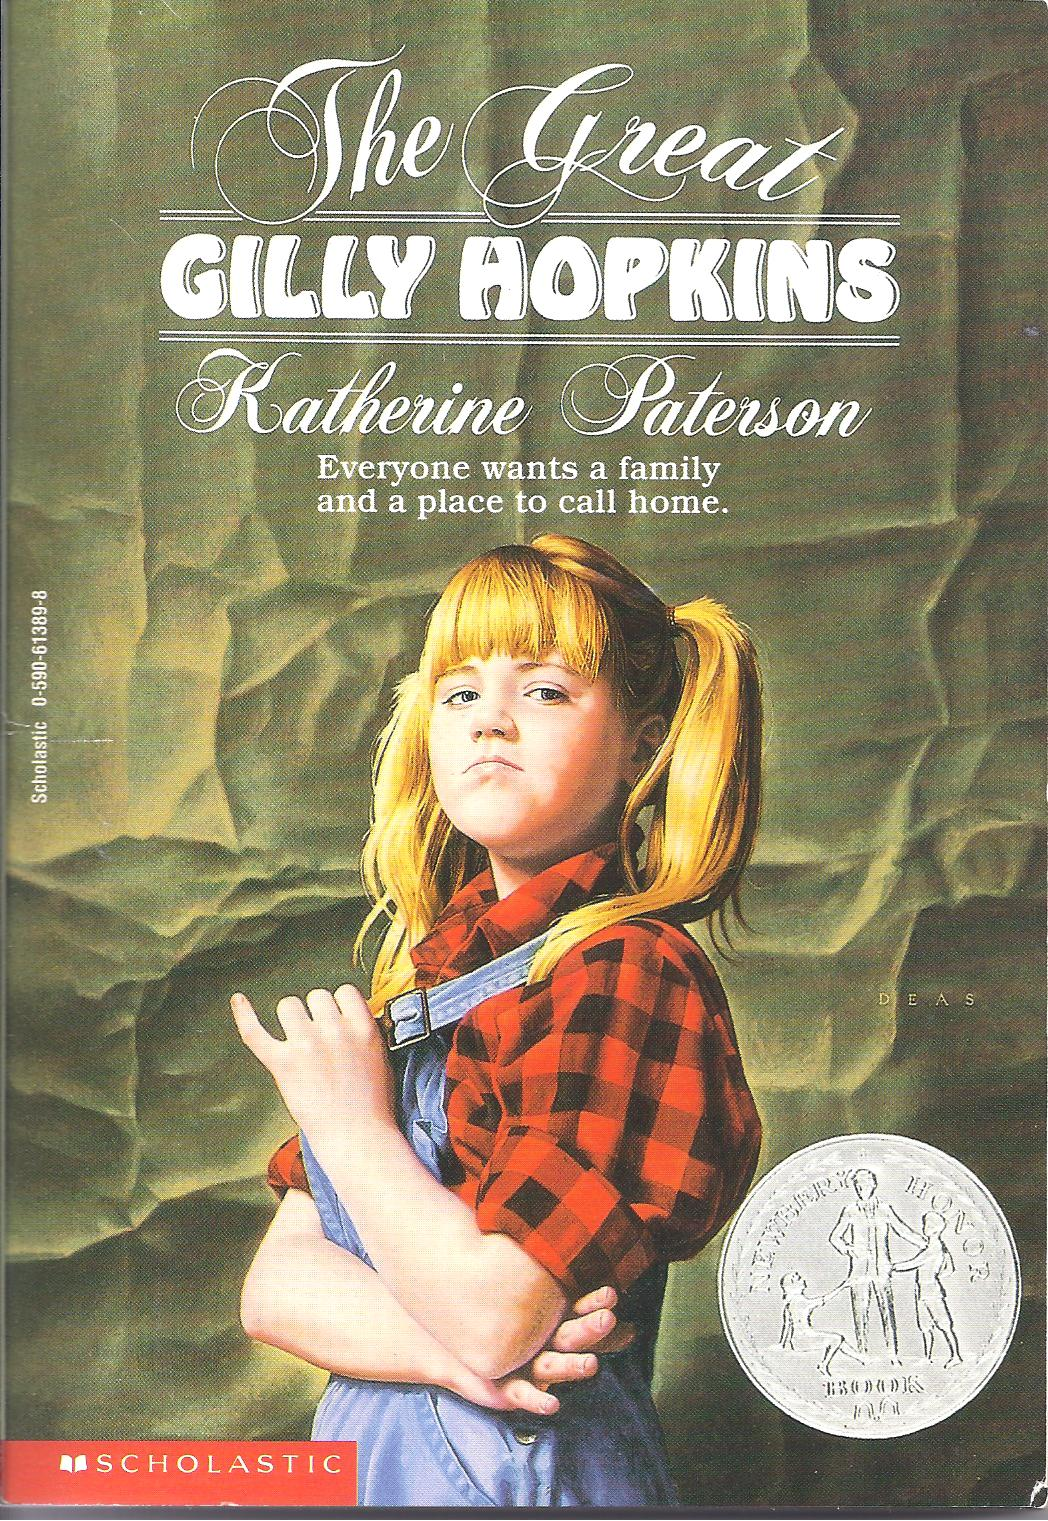 a review of the themes in the great gilly hopkins by katherine paterson This post contains an affiliate link title: the great gilly hopkins by katherine paterson notable: newbery honor book, 1979 premise: gilly hopkins is in.